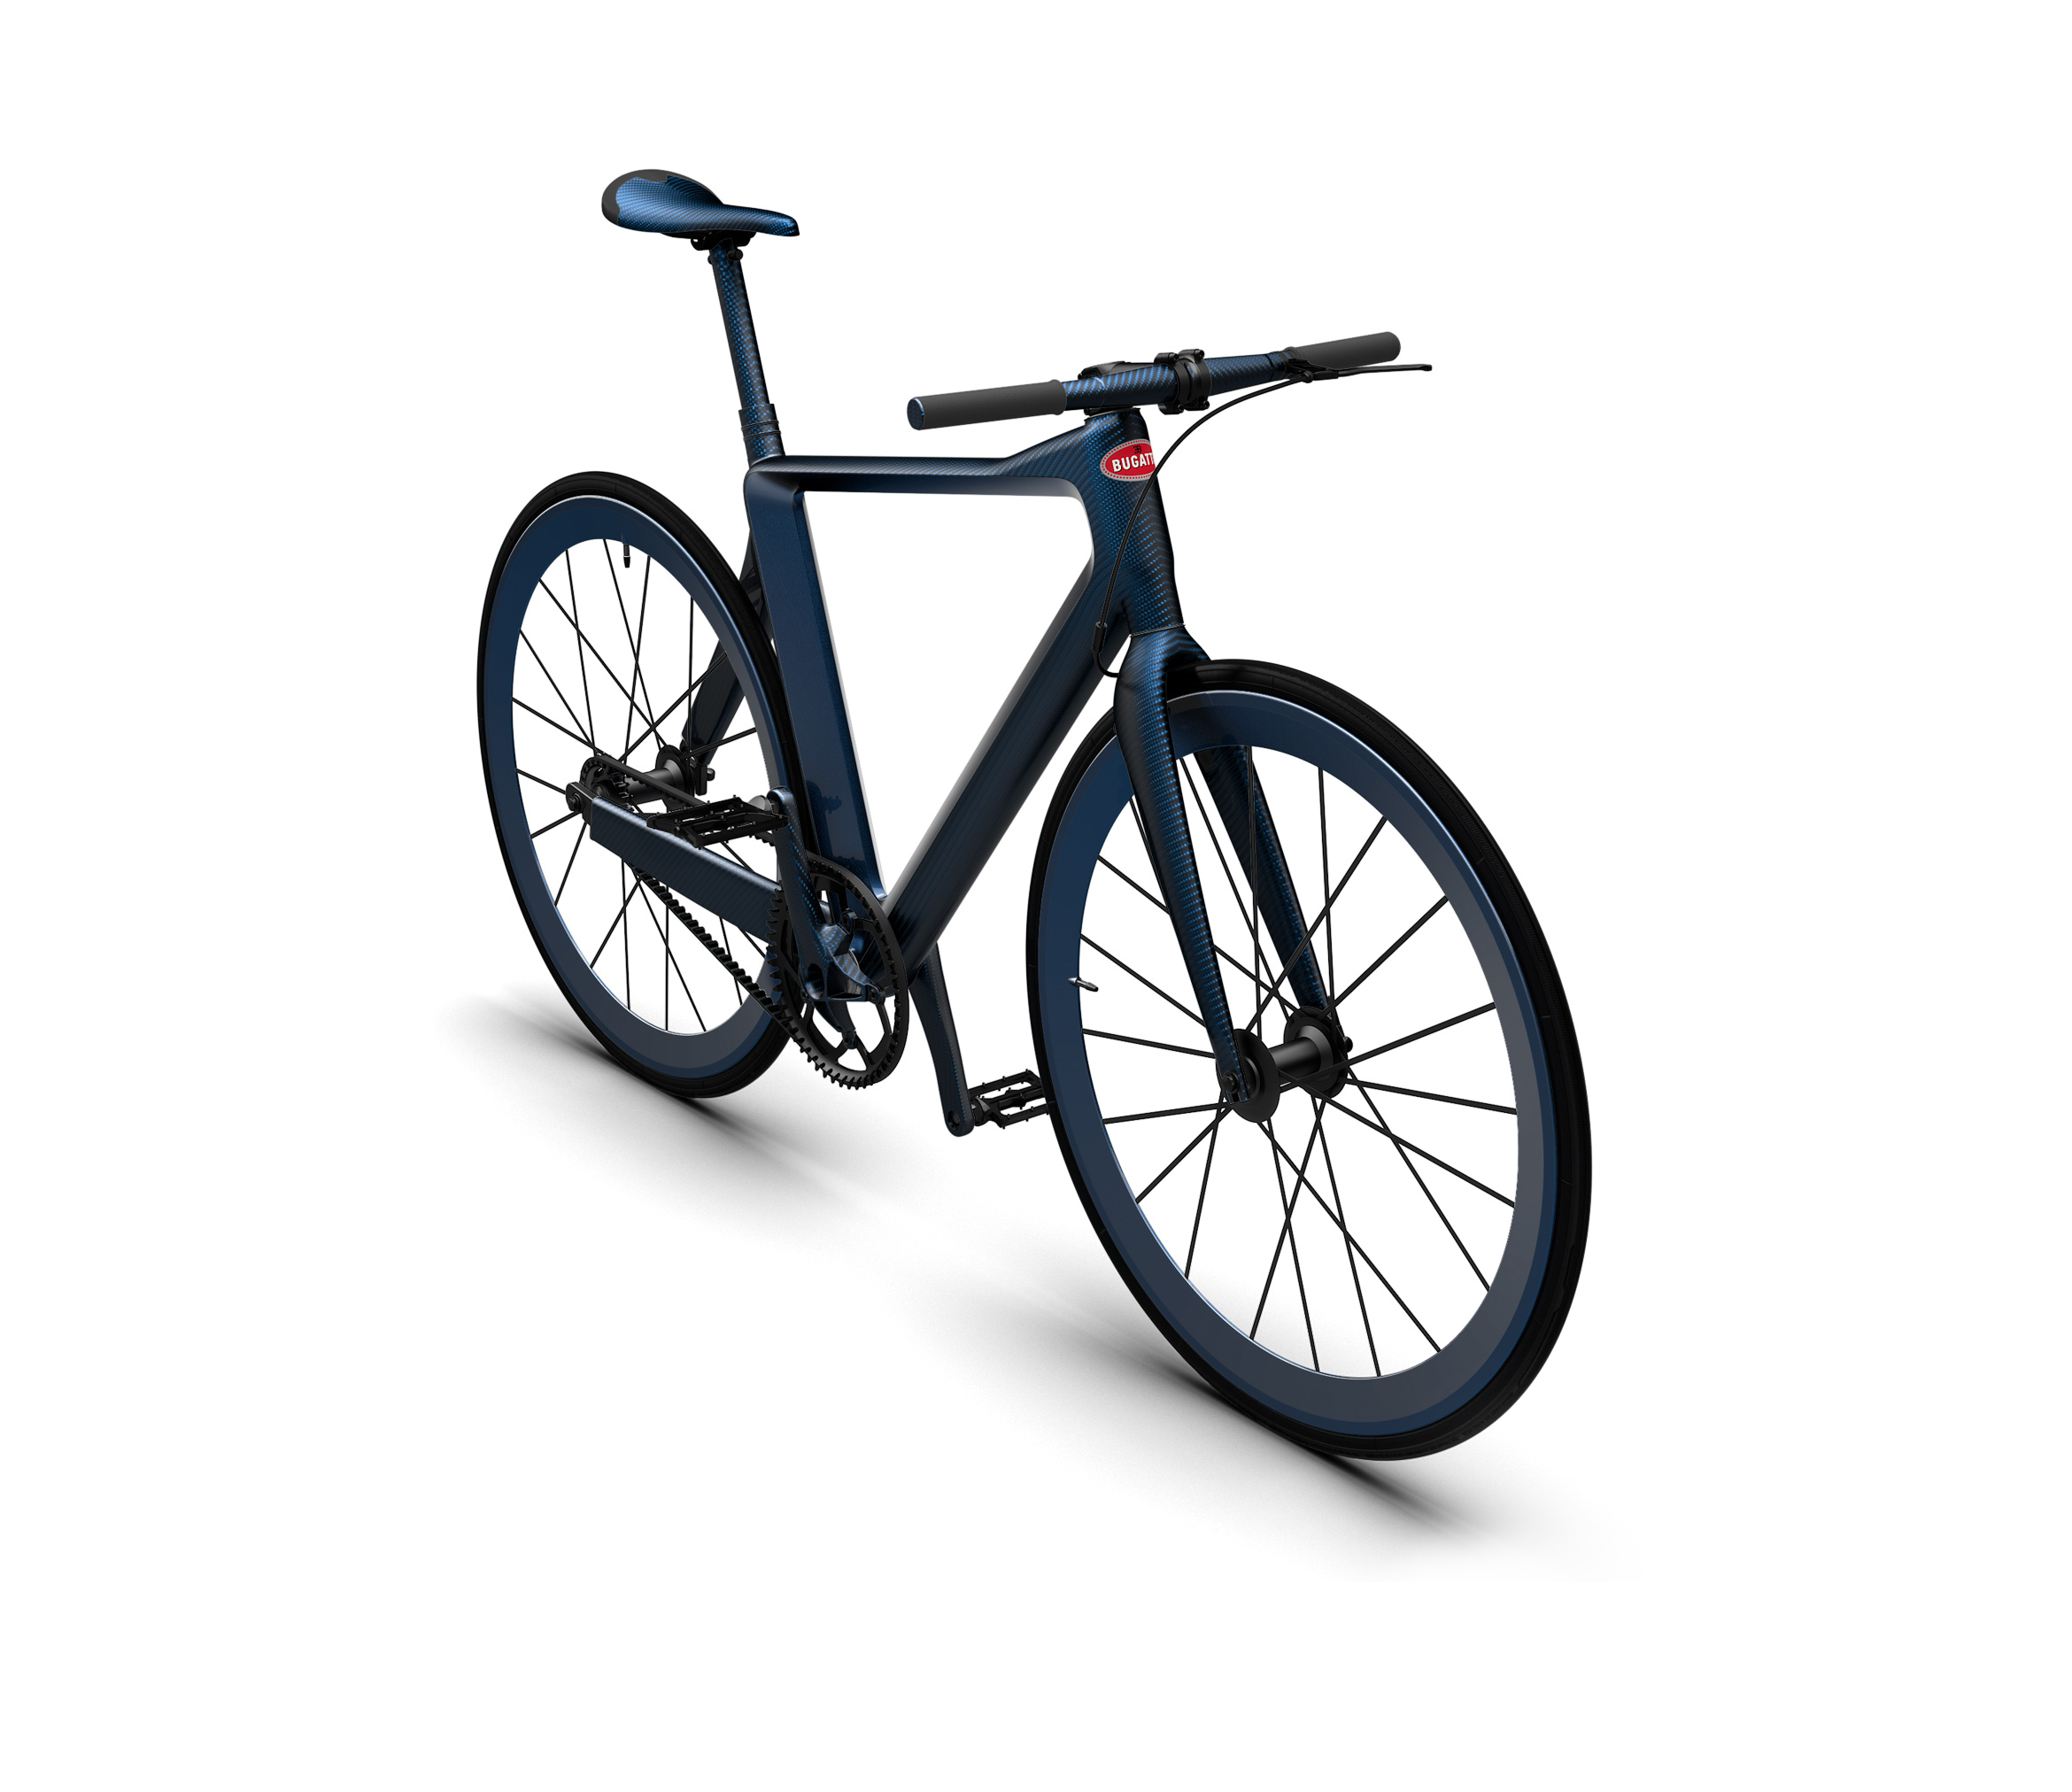 PG Bugatti bicycle (3)